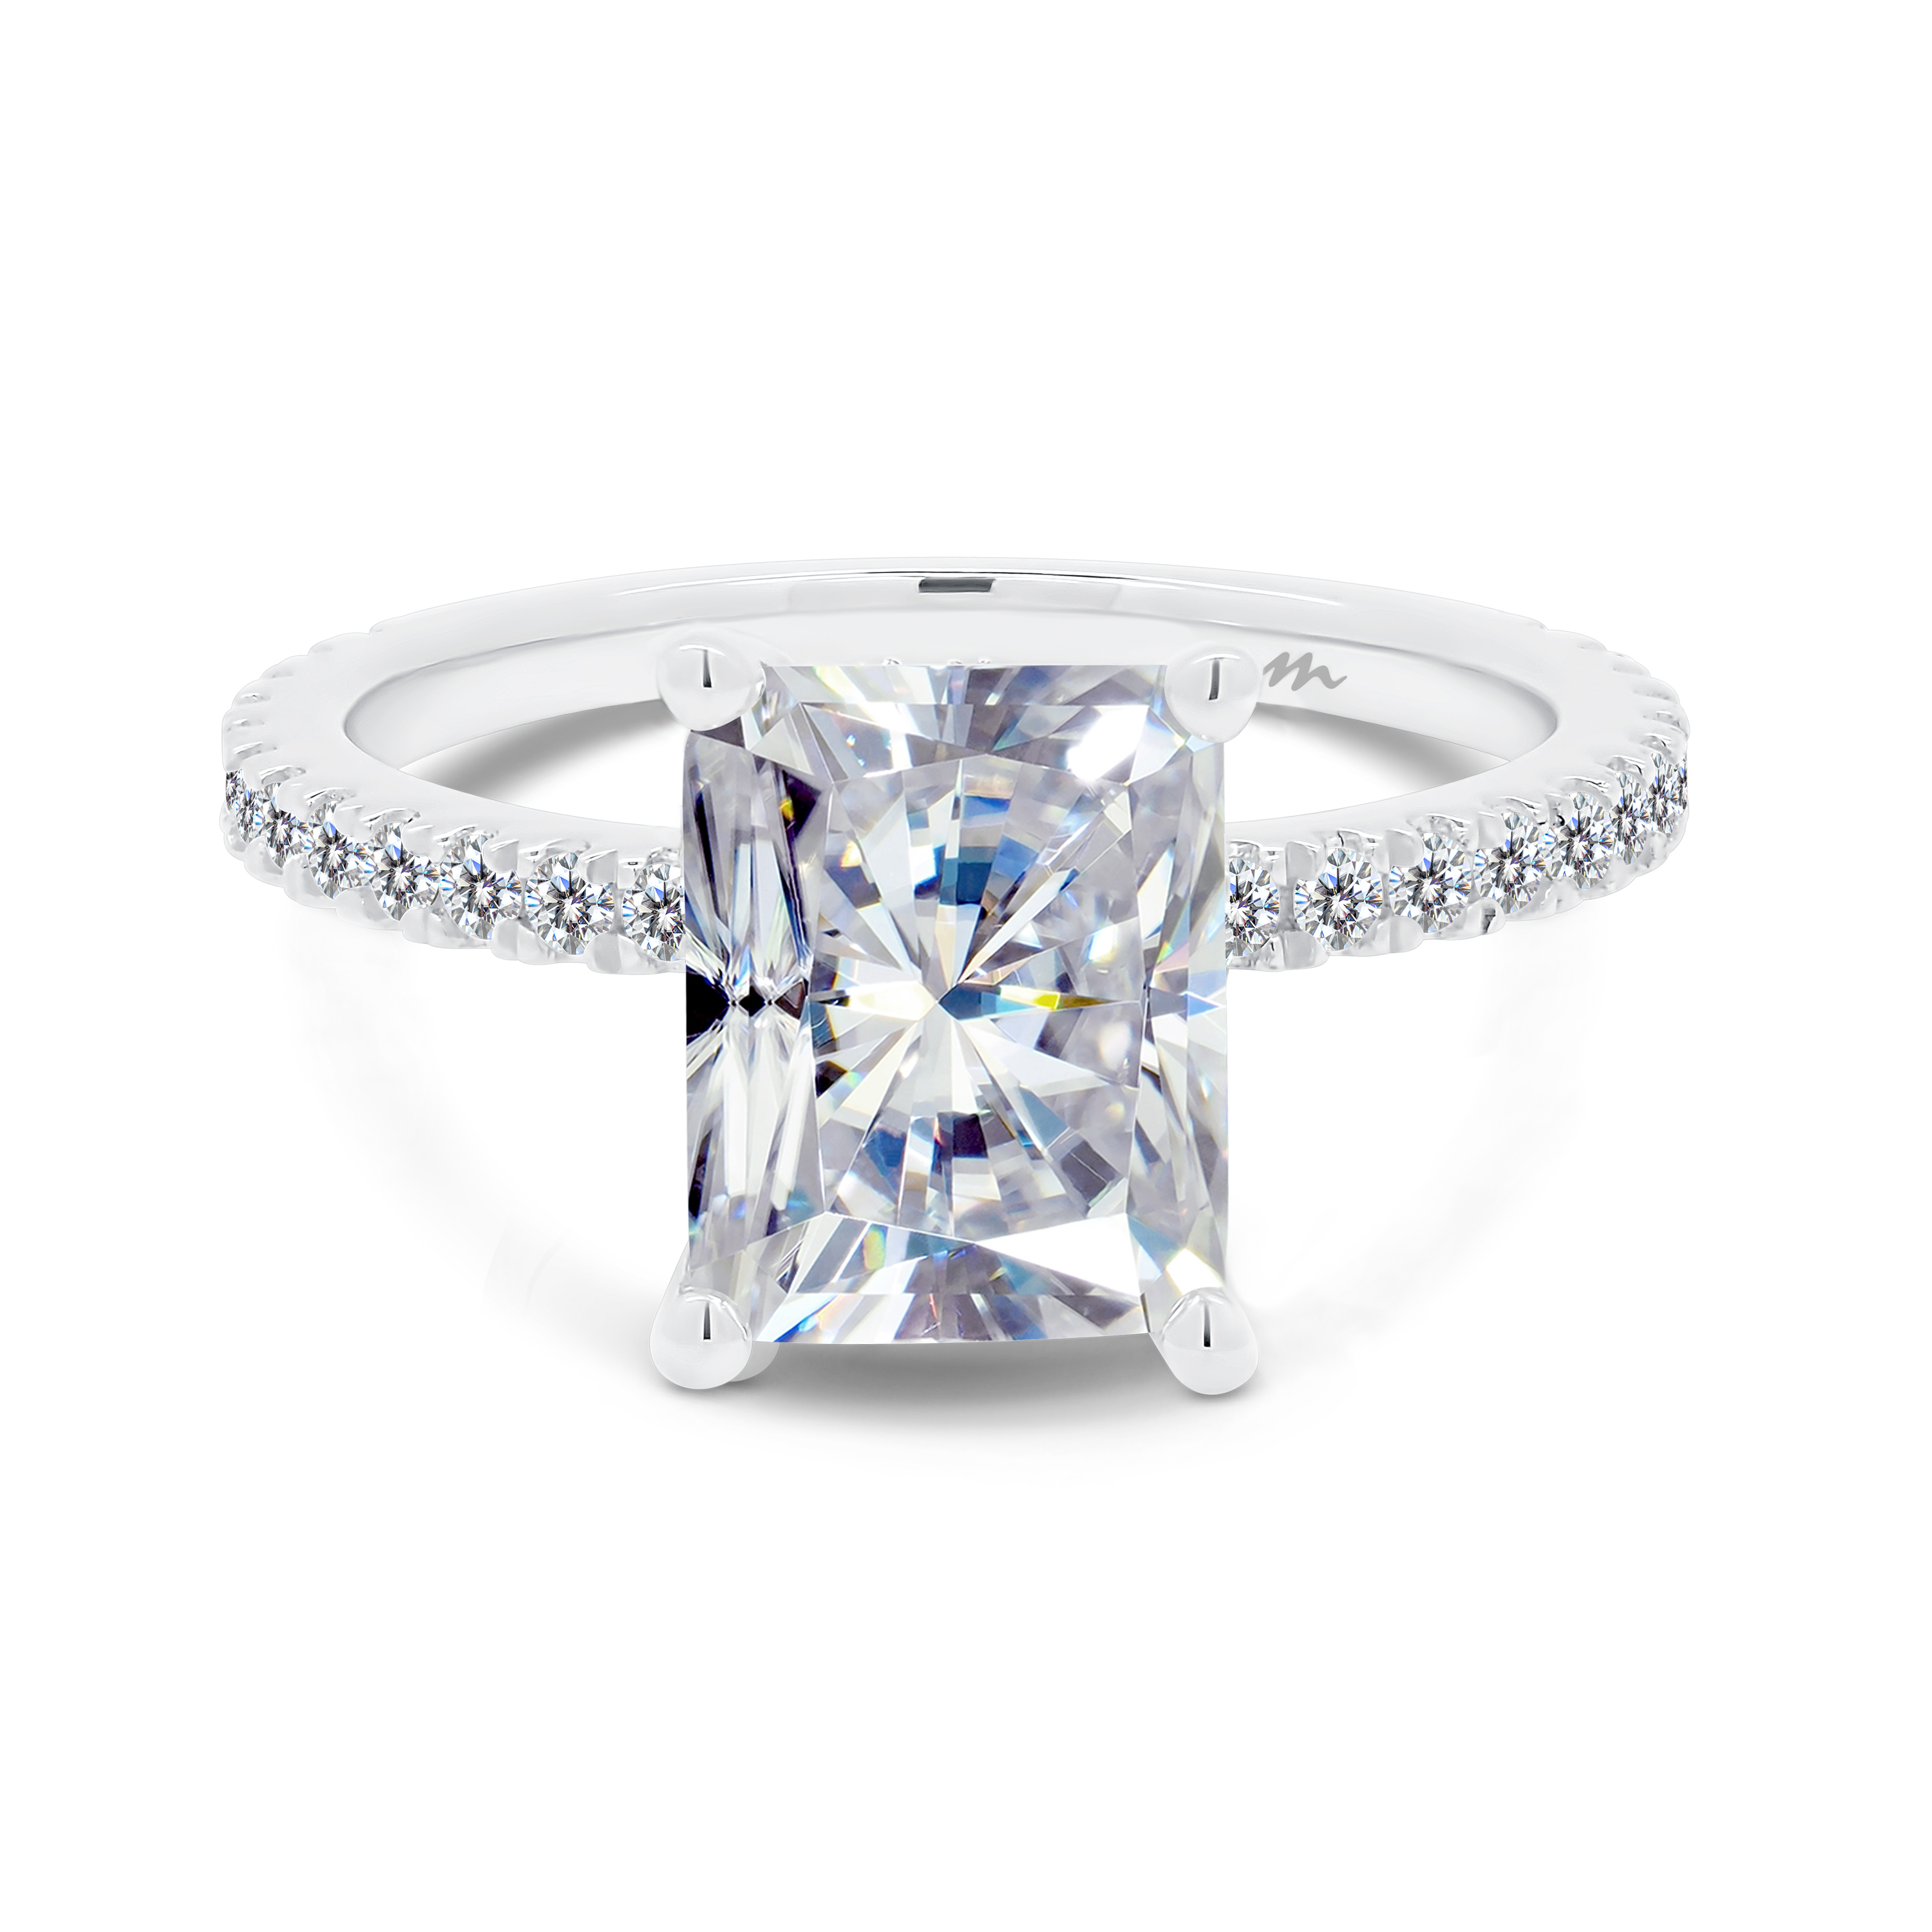 Mia 4 prong radiant ring on encrusted setting and 3/4 stone set band